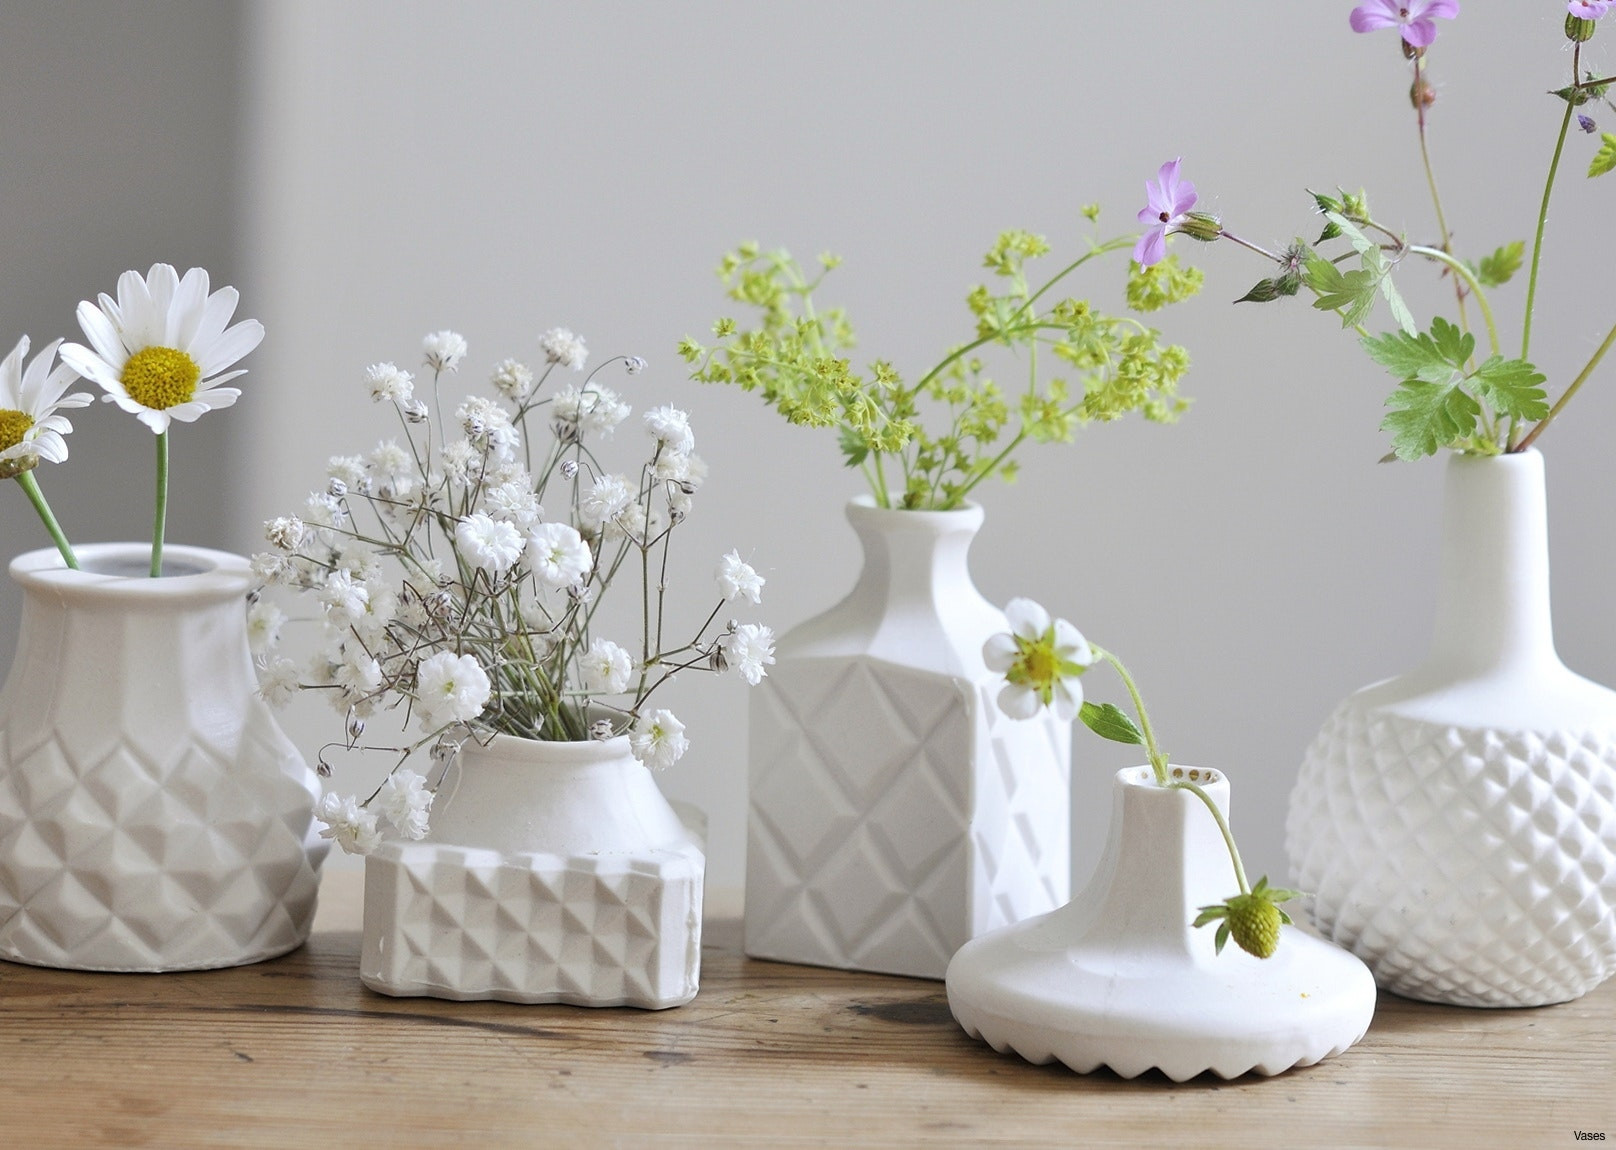 13 Nice Small Vases Bulk Decorative Vase Ideas